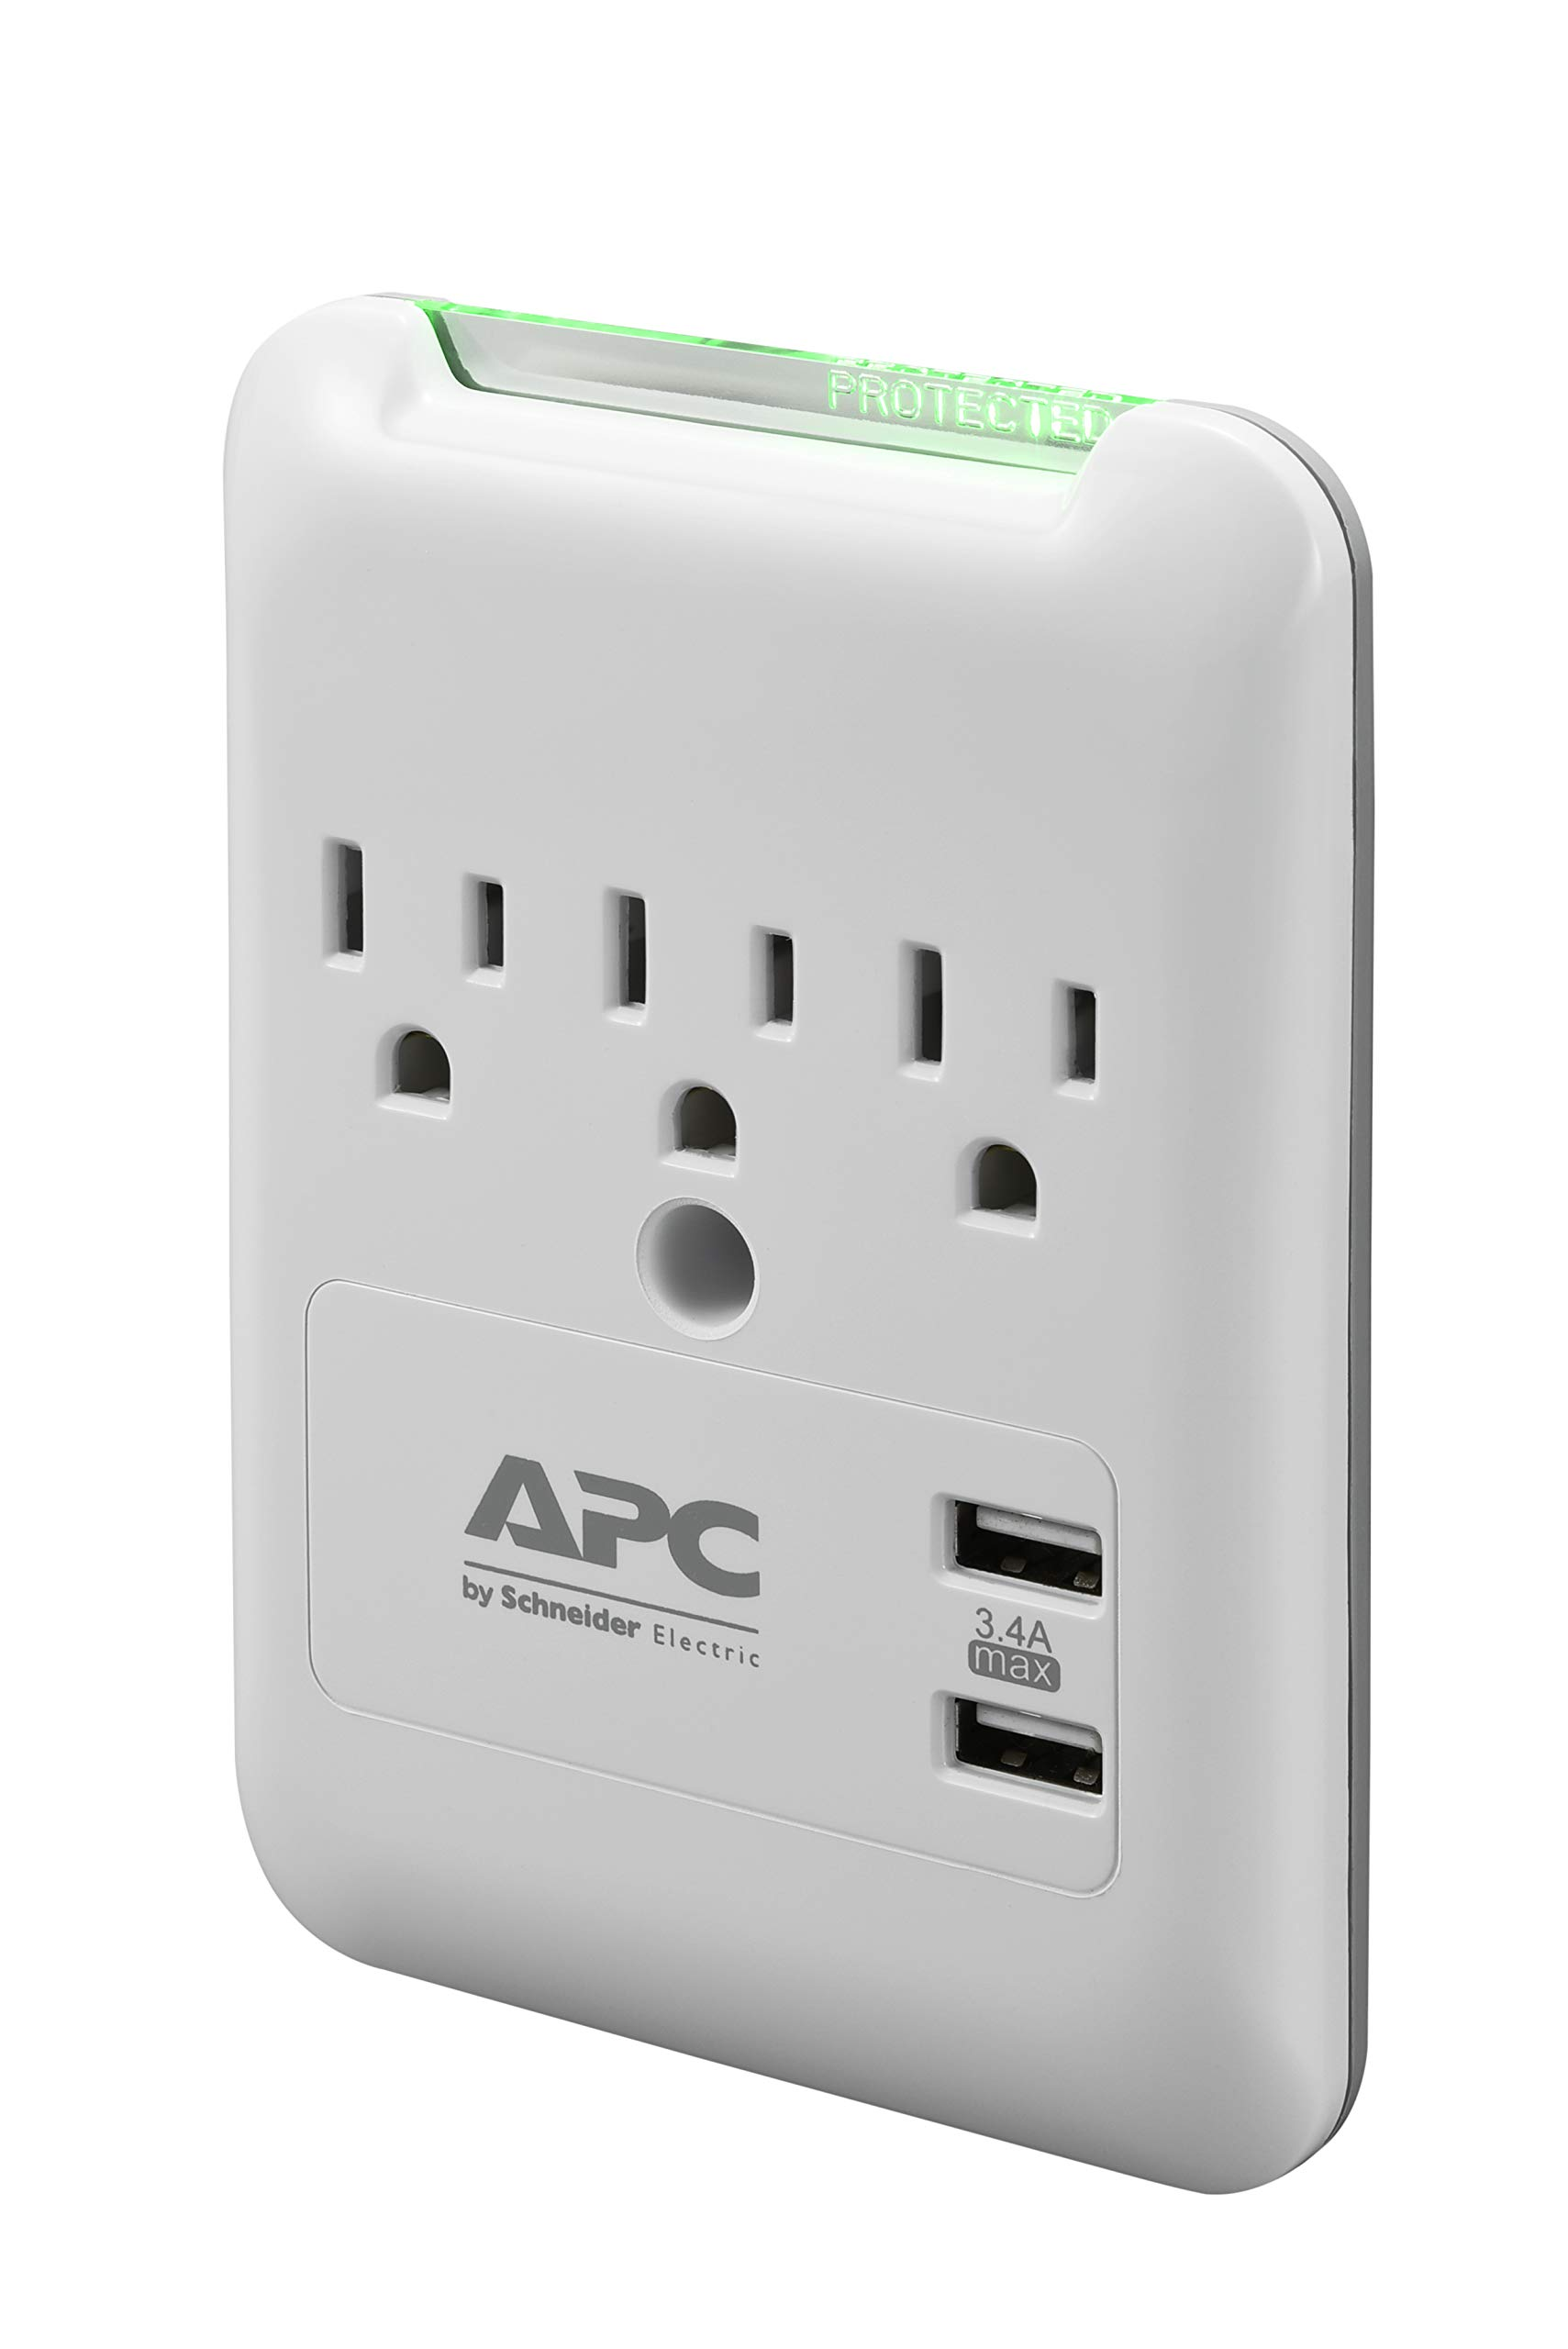 APC Wall Surge Protector, 3-Outlets, 540 Joule Surge Protector with Two USB Charging Ports, SurgeArrest Essential (PE3WU3)